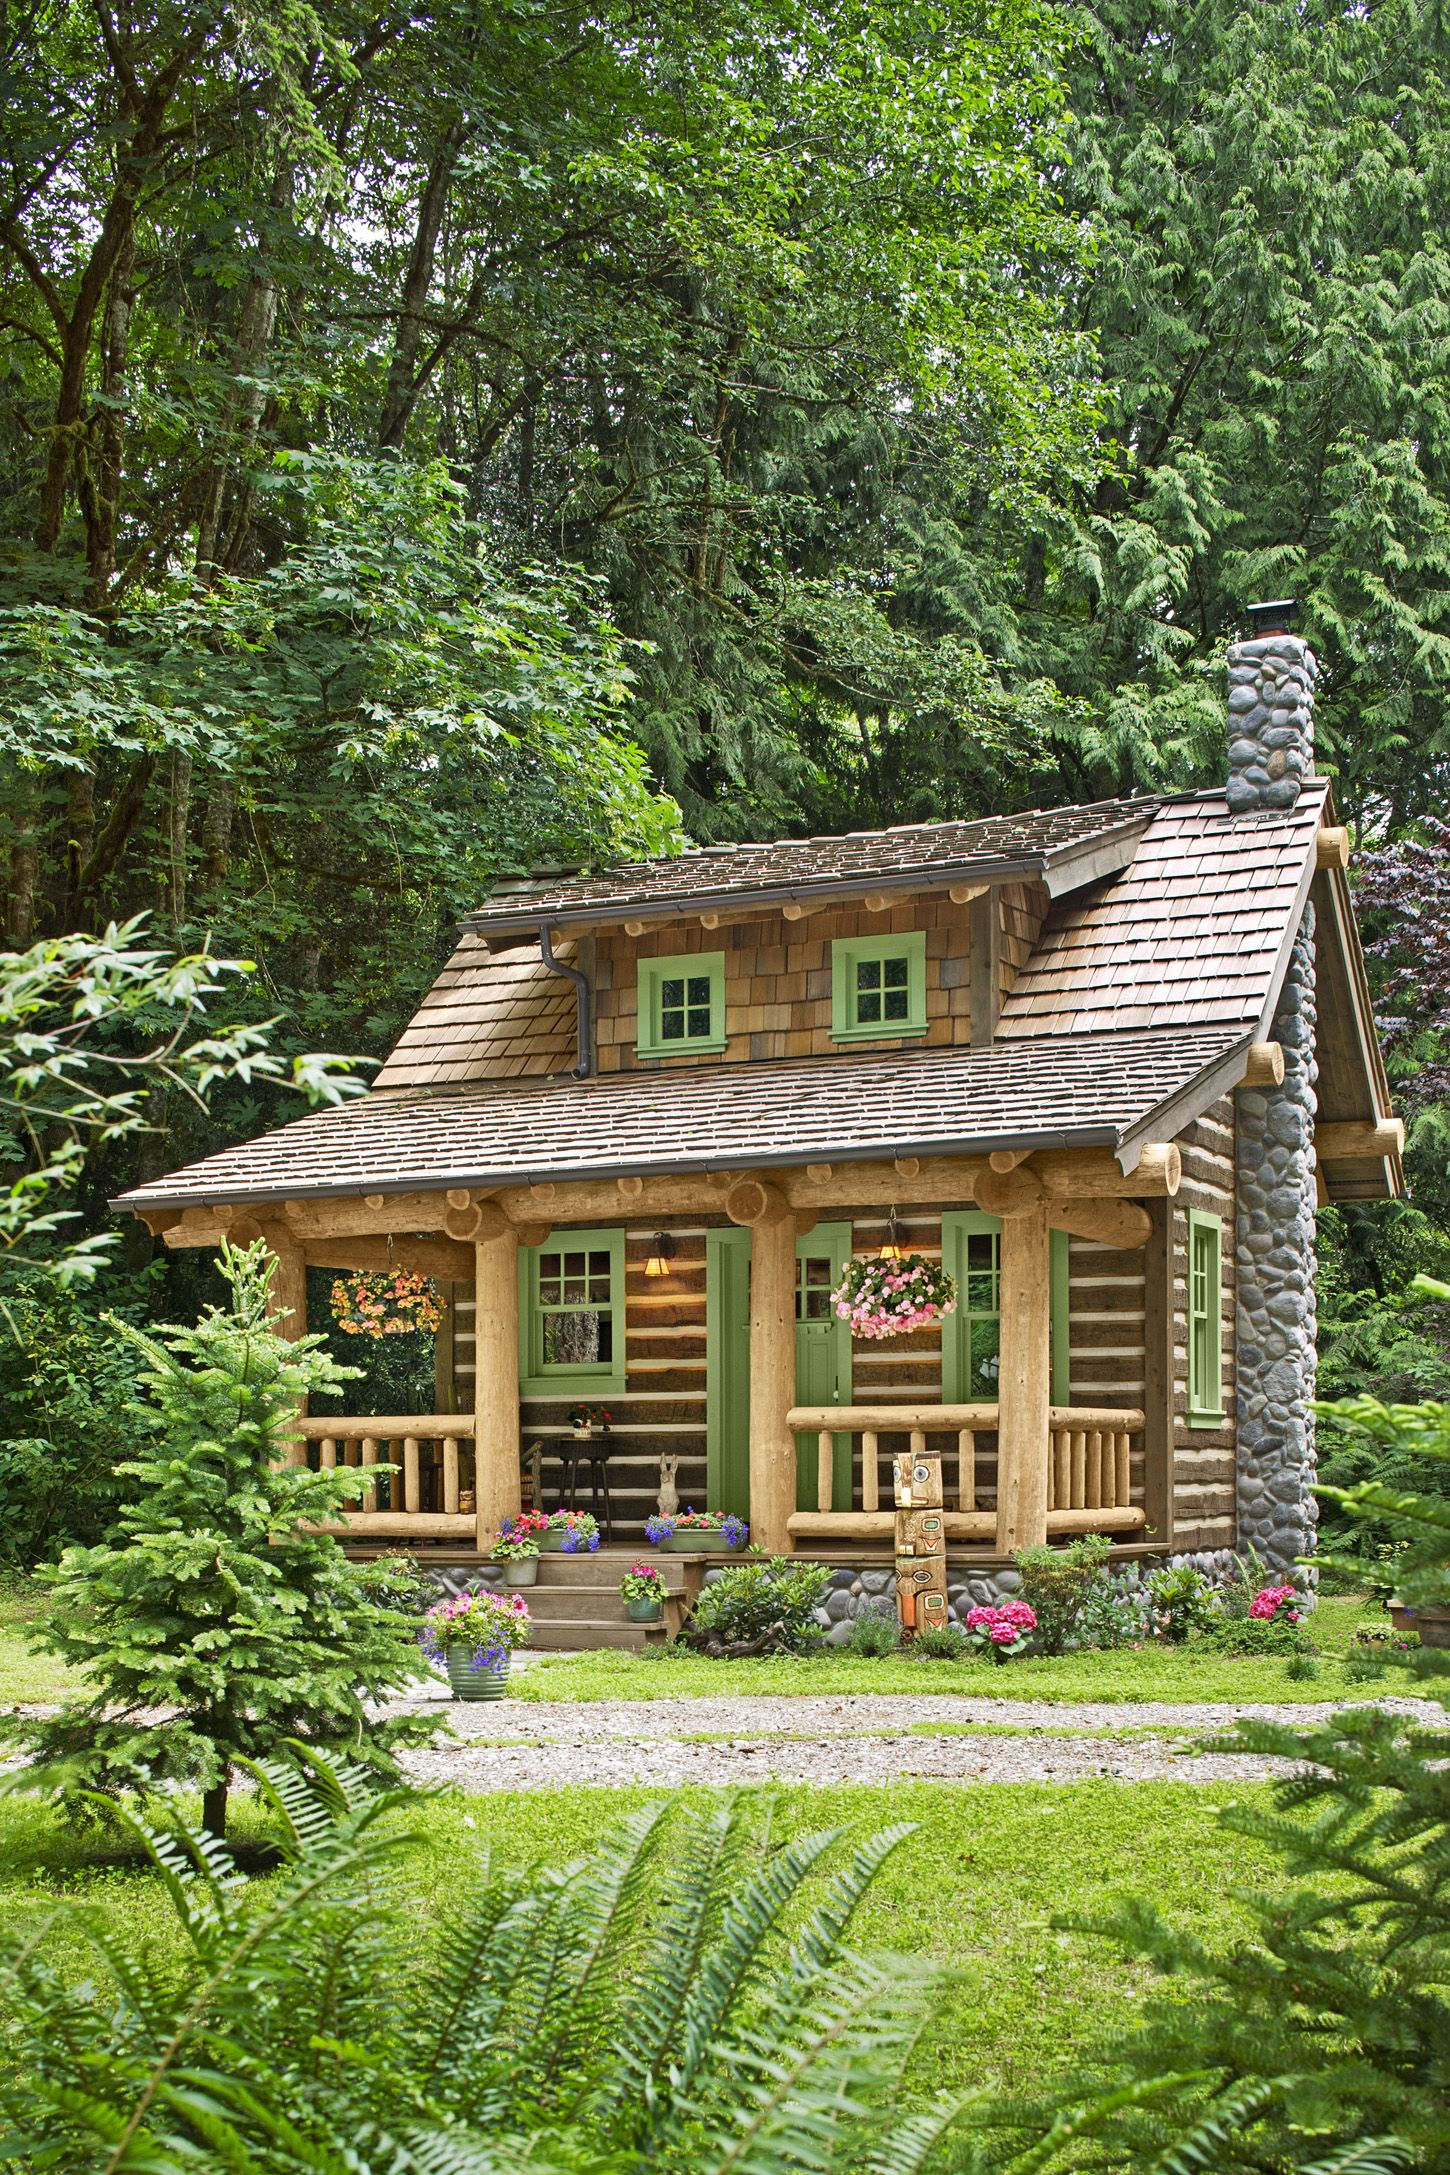 Most Beautiful Small Homes Elegant 86 Best Tiny Houses 2020 Small House & Plans